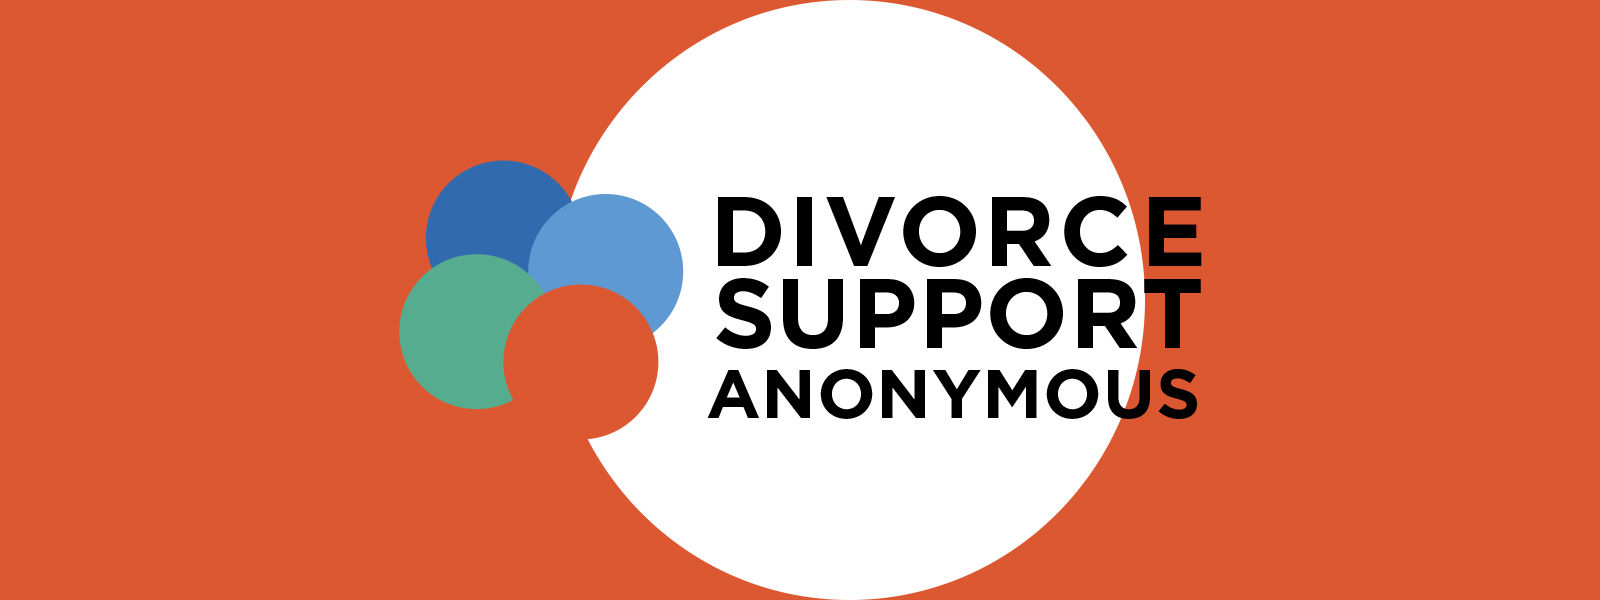 Divorce Support Anonymous